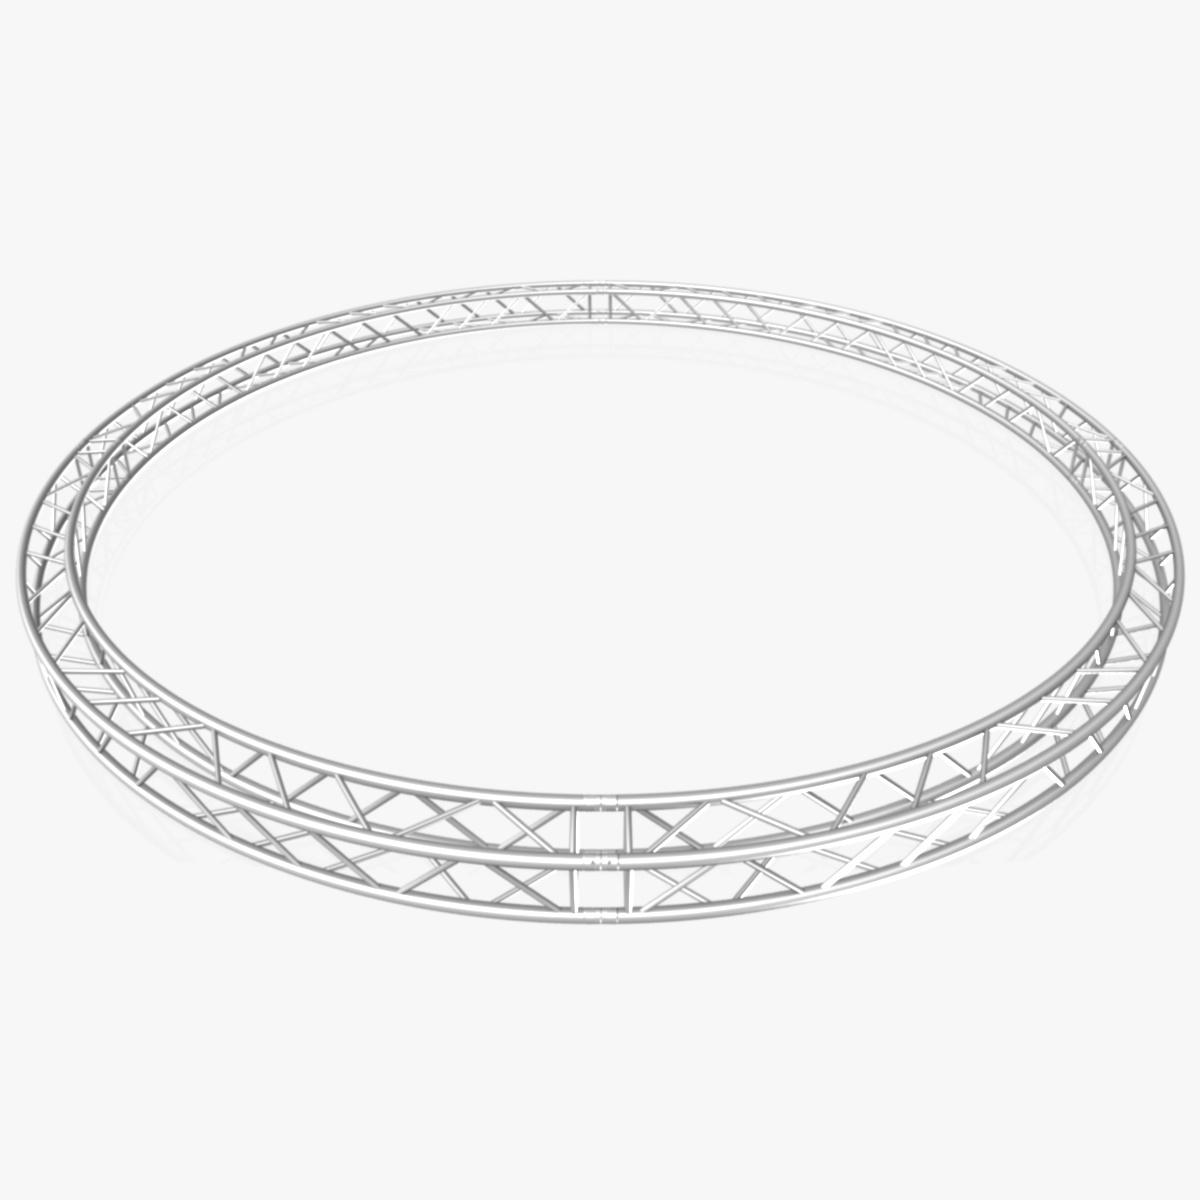 circle square truss (full diameter 600cm) 3d model 3ds max dxf fbx c4d dae  obj 253094